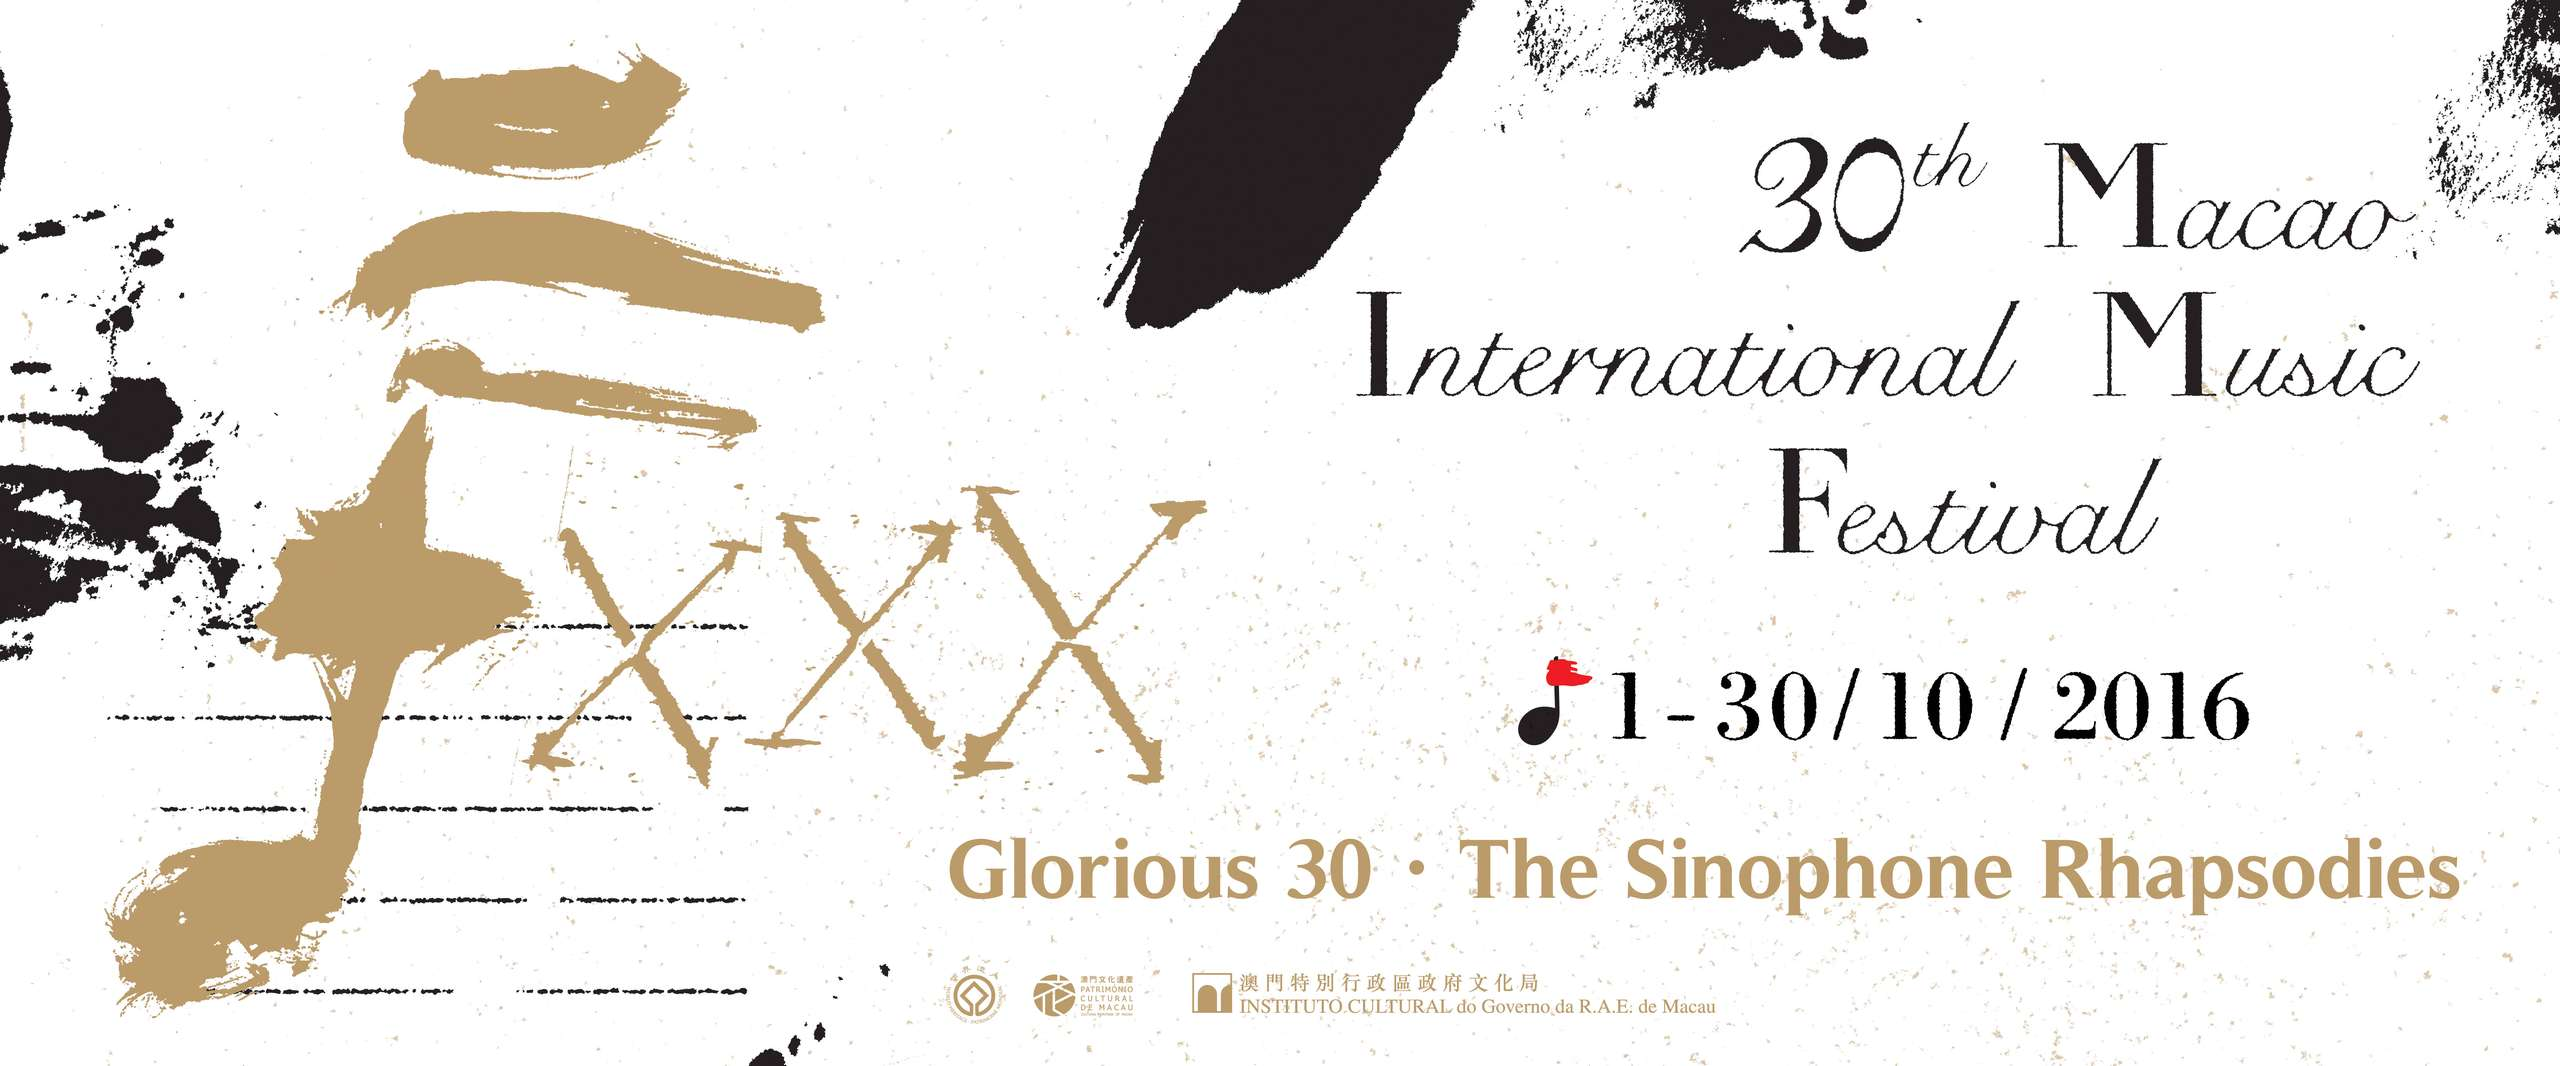 Poster for 30th Macao International Music Festival